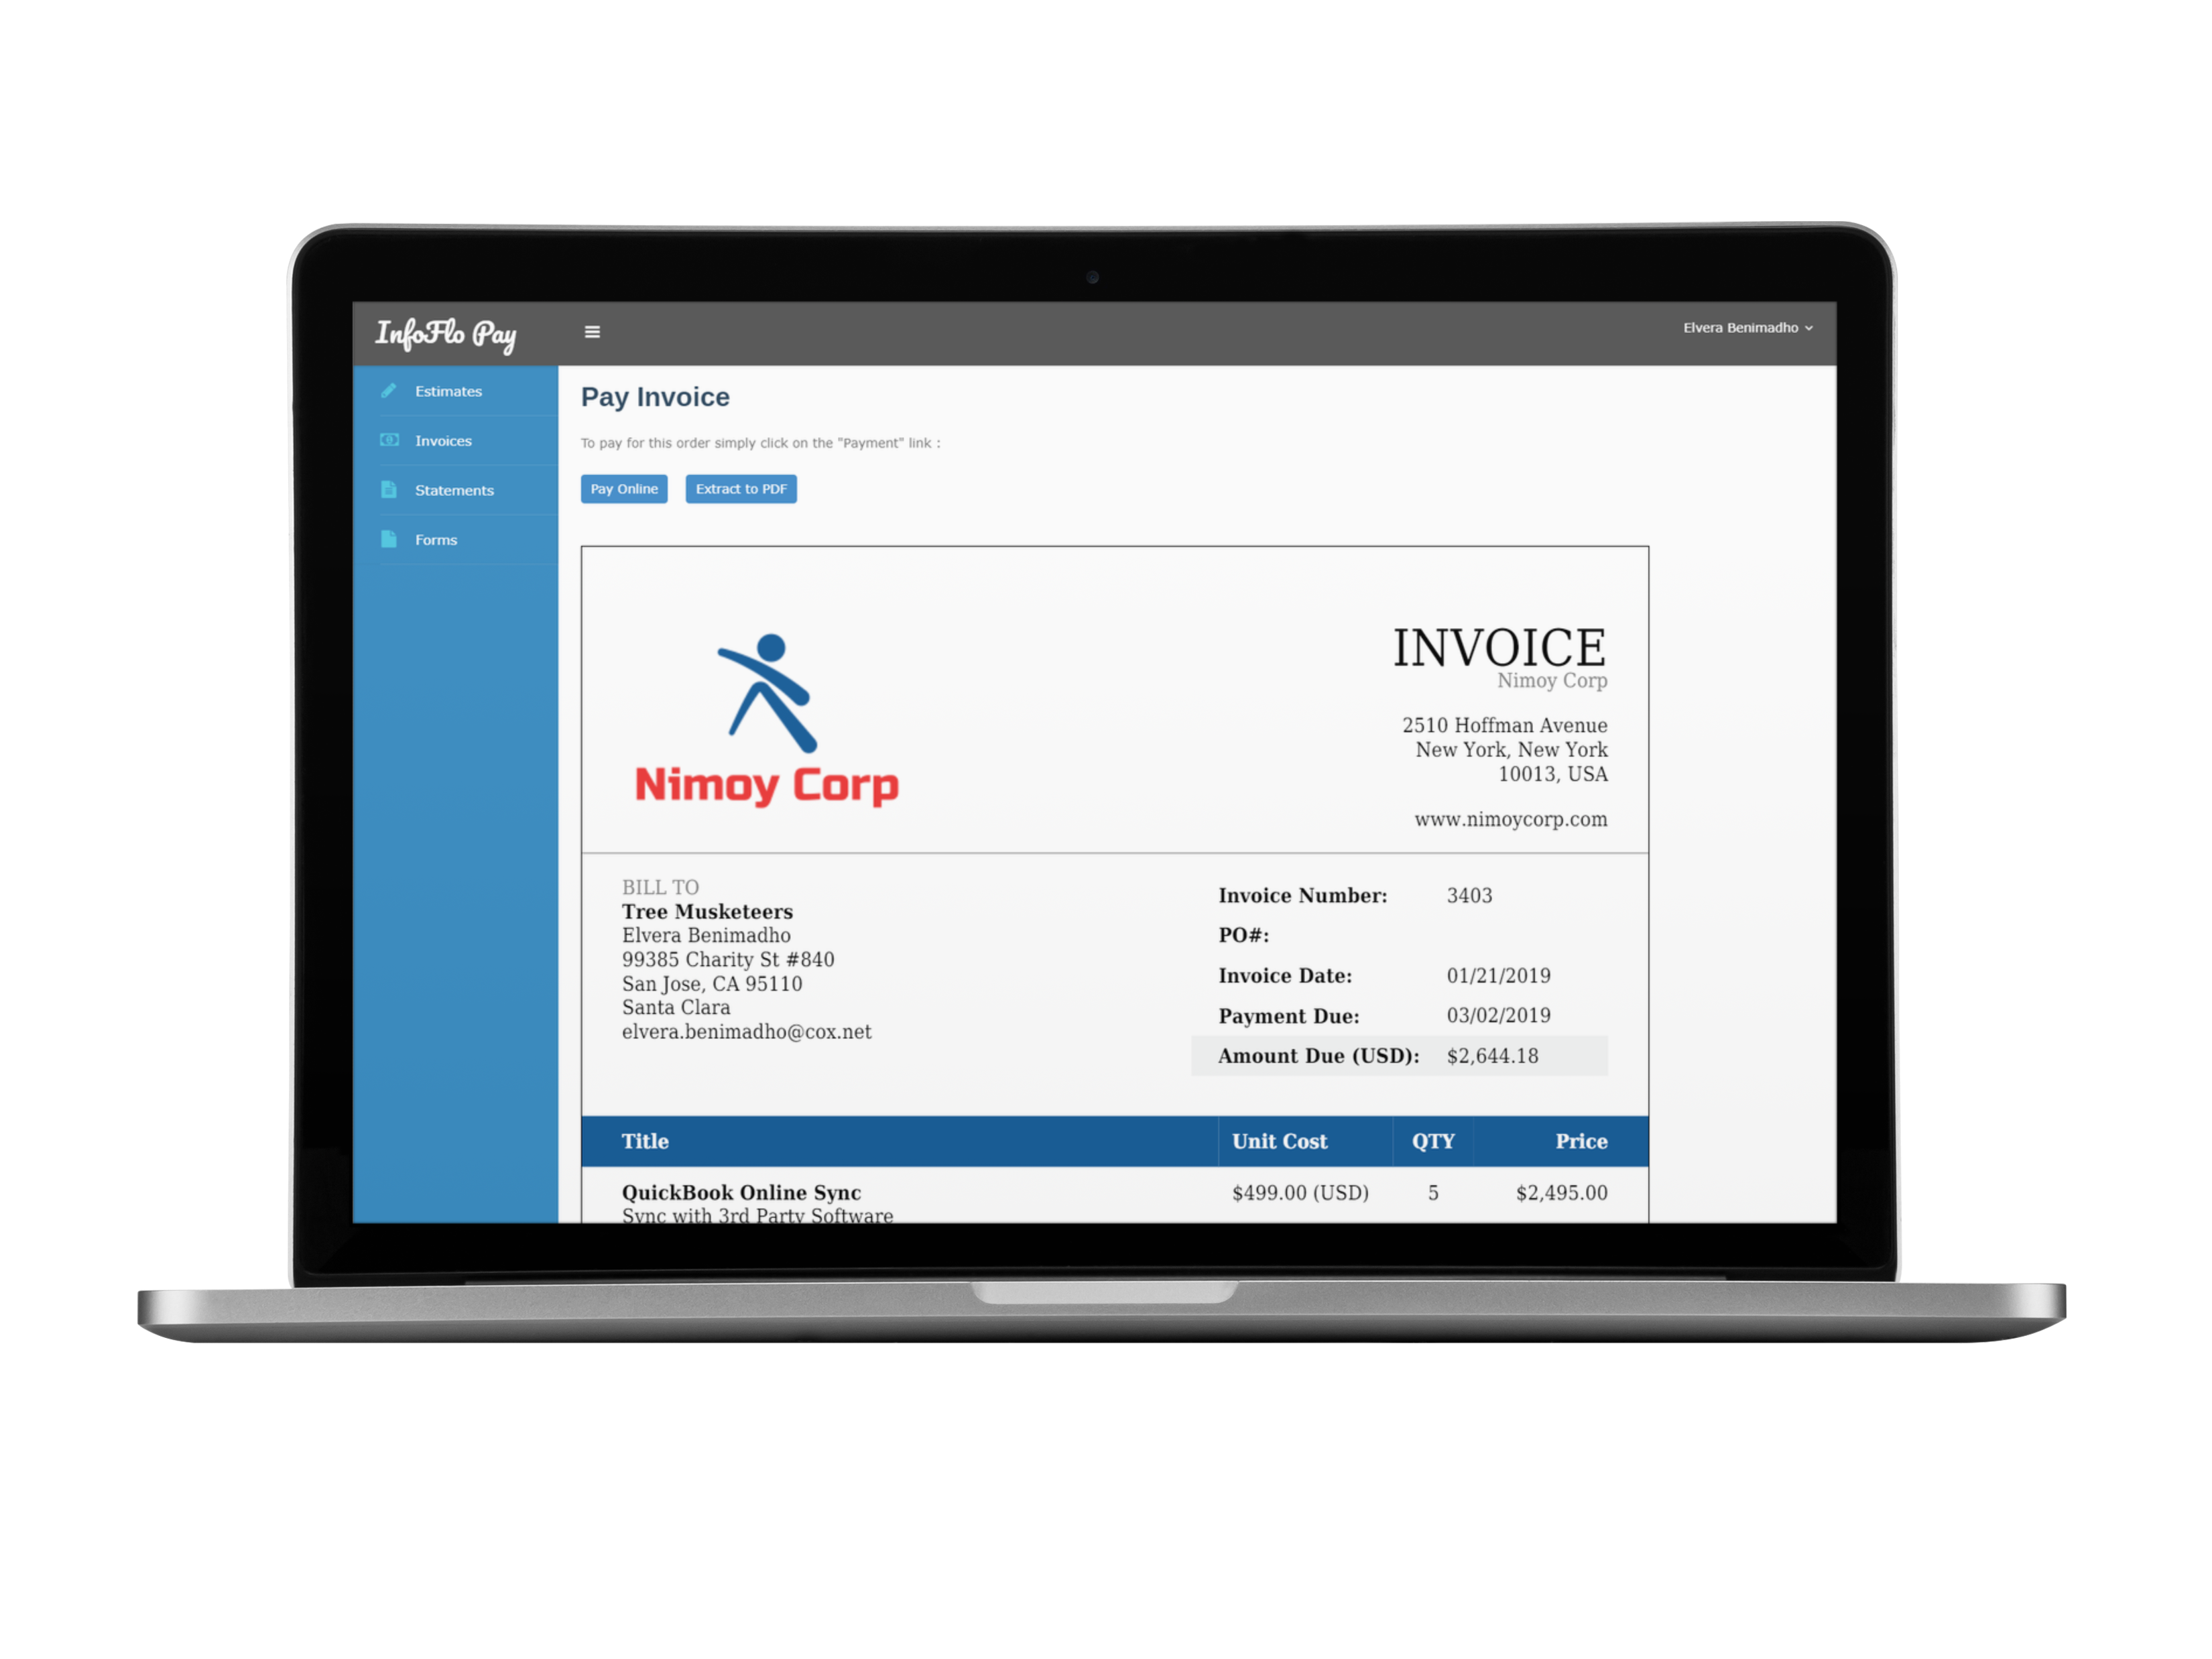 InfoFlo Pay Customer Portal